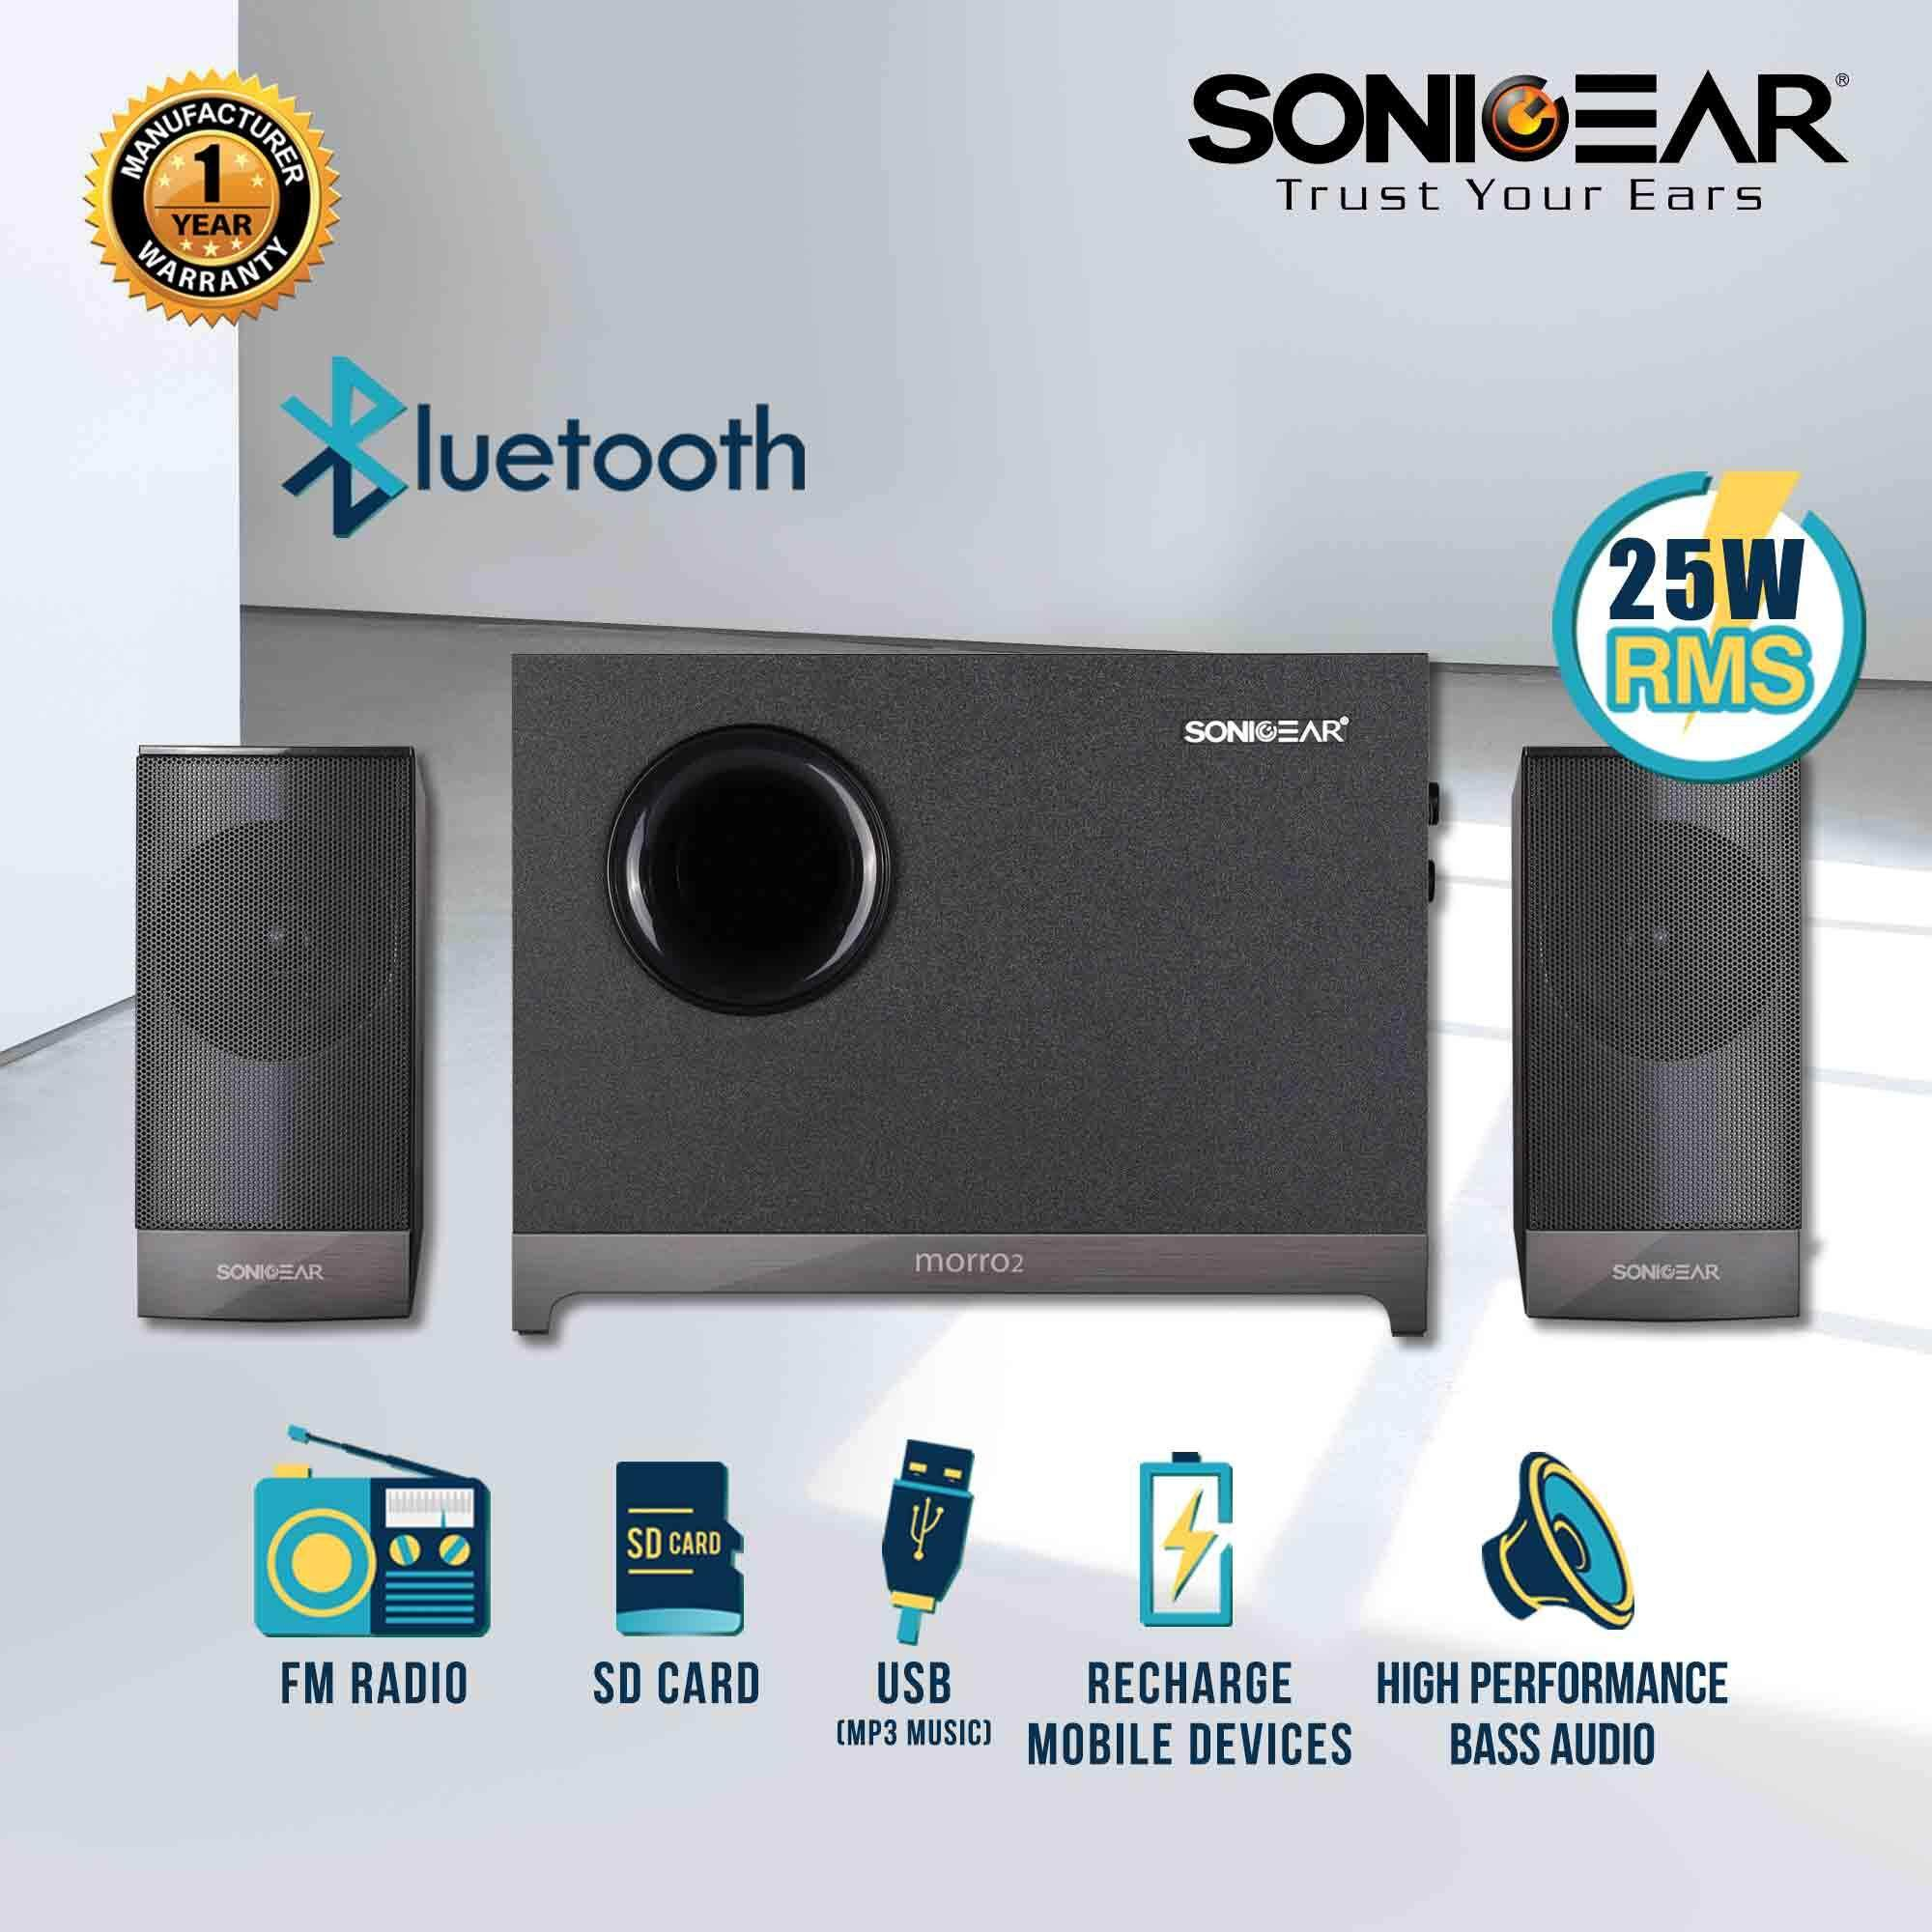 Fitur Microlab Speaker M300u 2 1 38 Watt Usb Sd Card Fm Radio Hitam Bluetooth Leather Black Morro Btmi With Slot Mp3